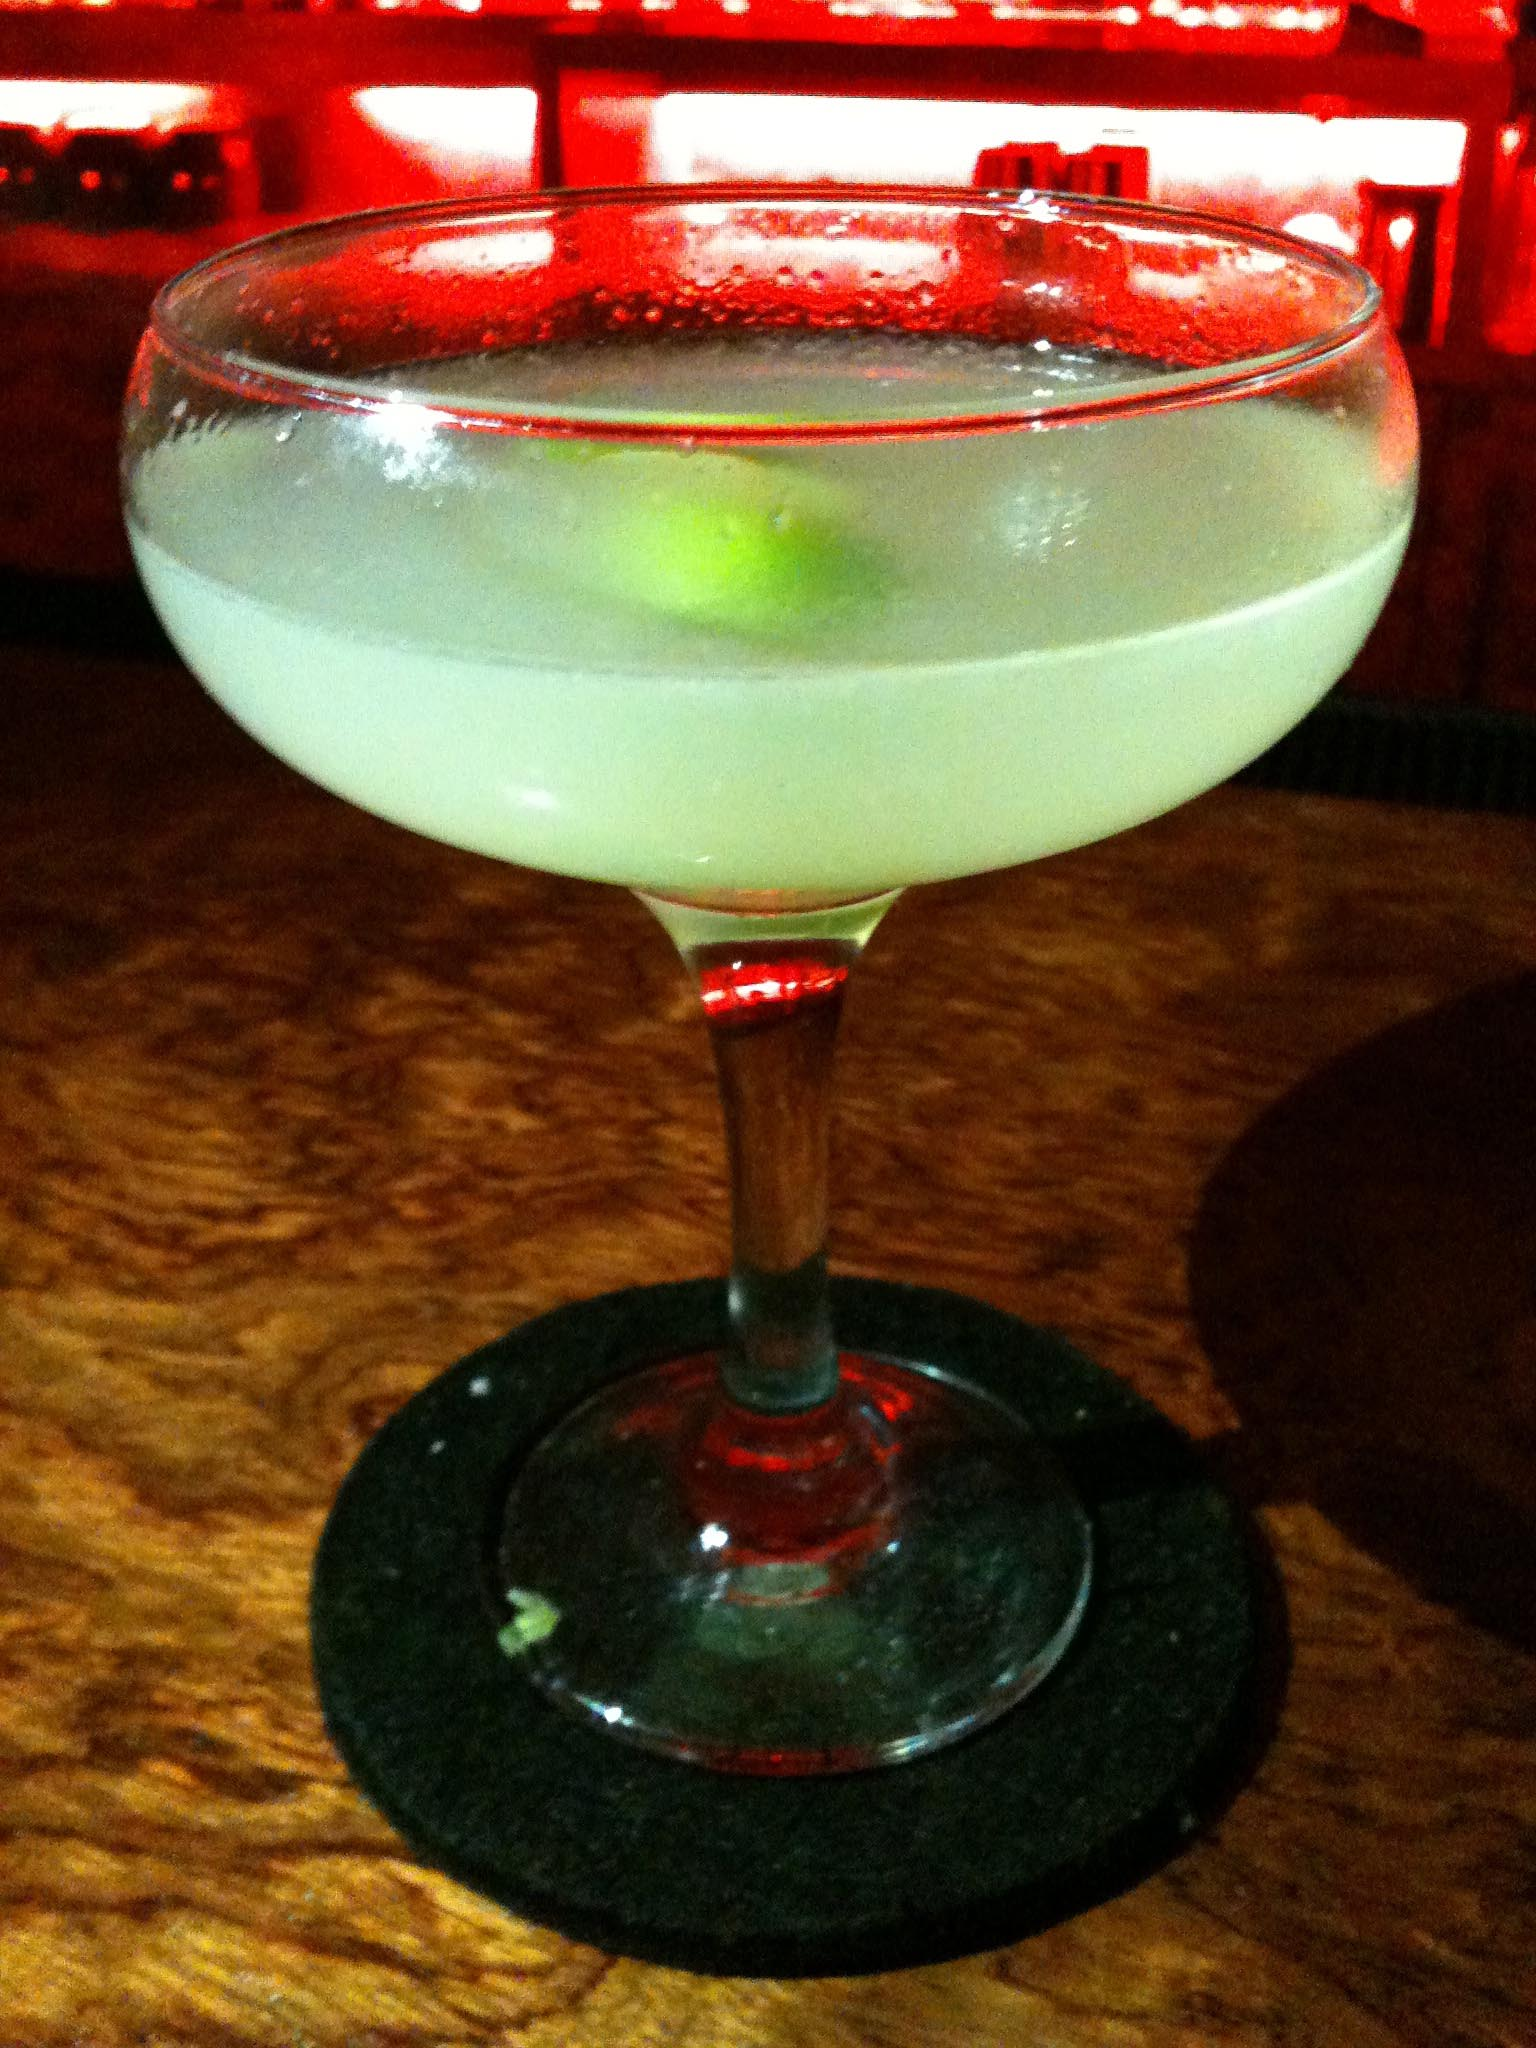 A Daiquiri at Reingold in Berlin